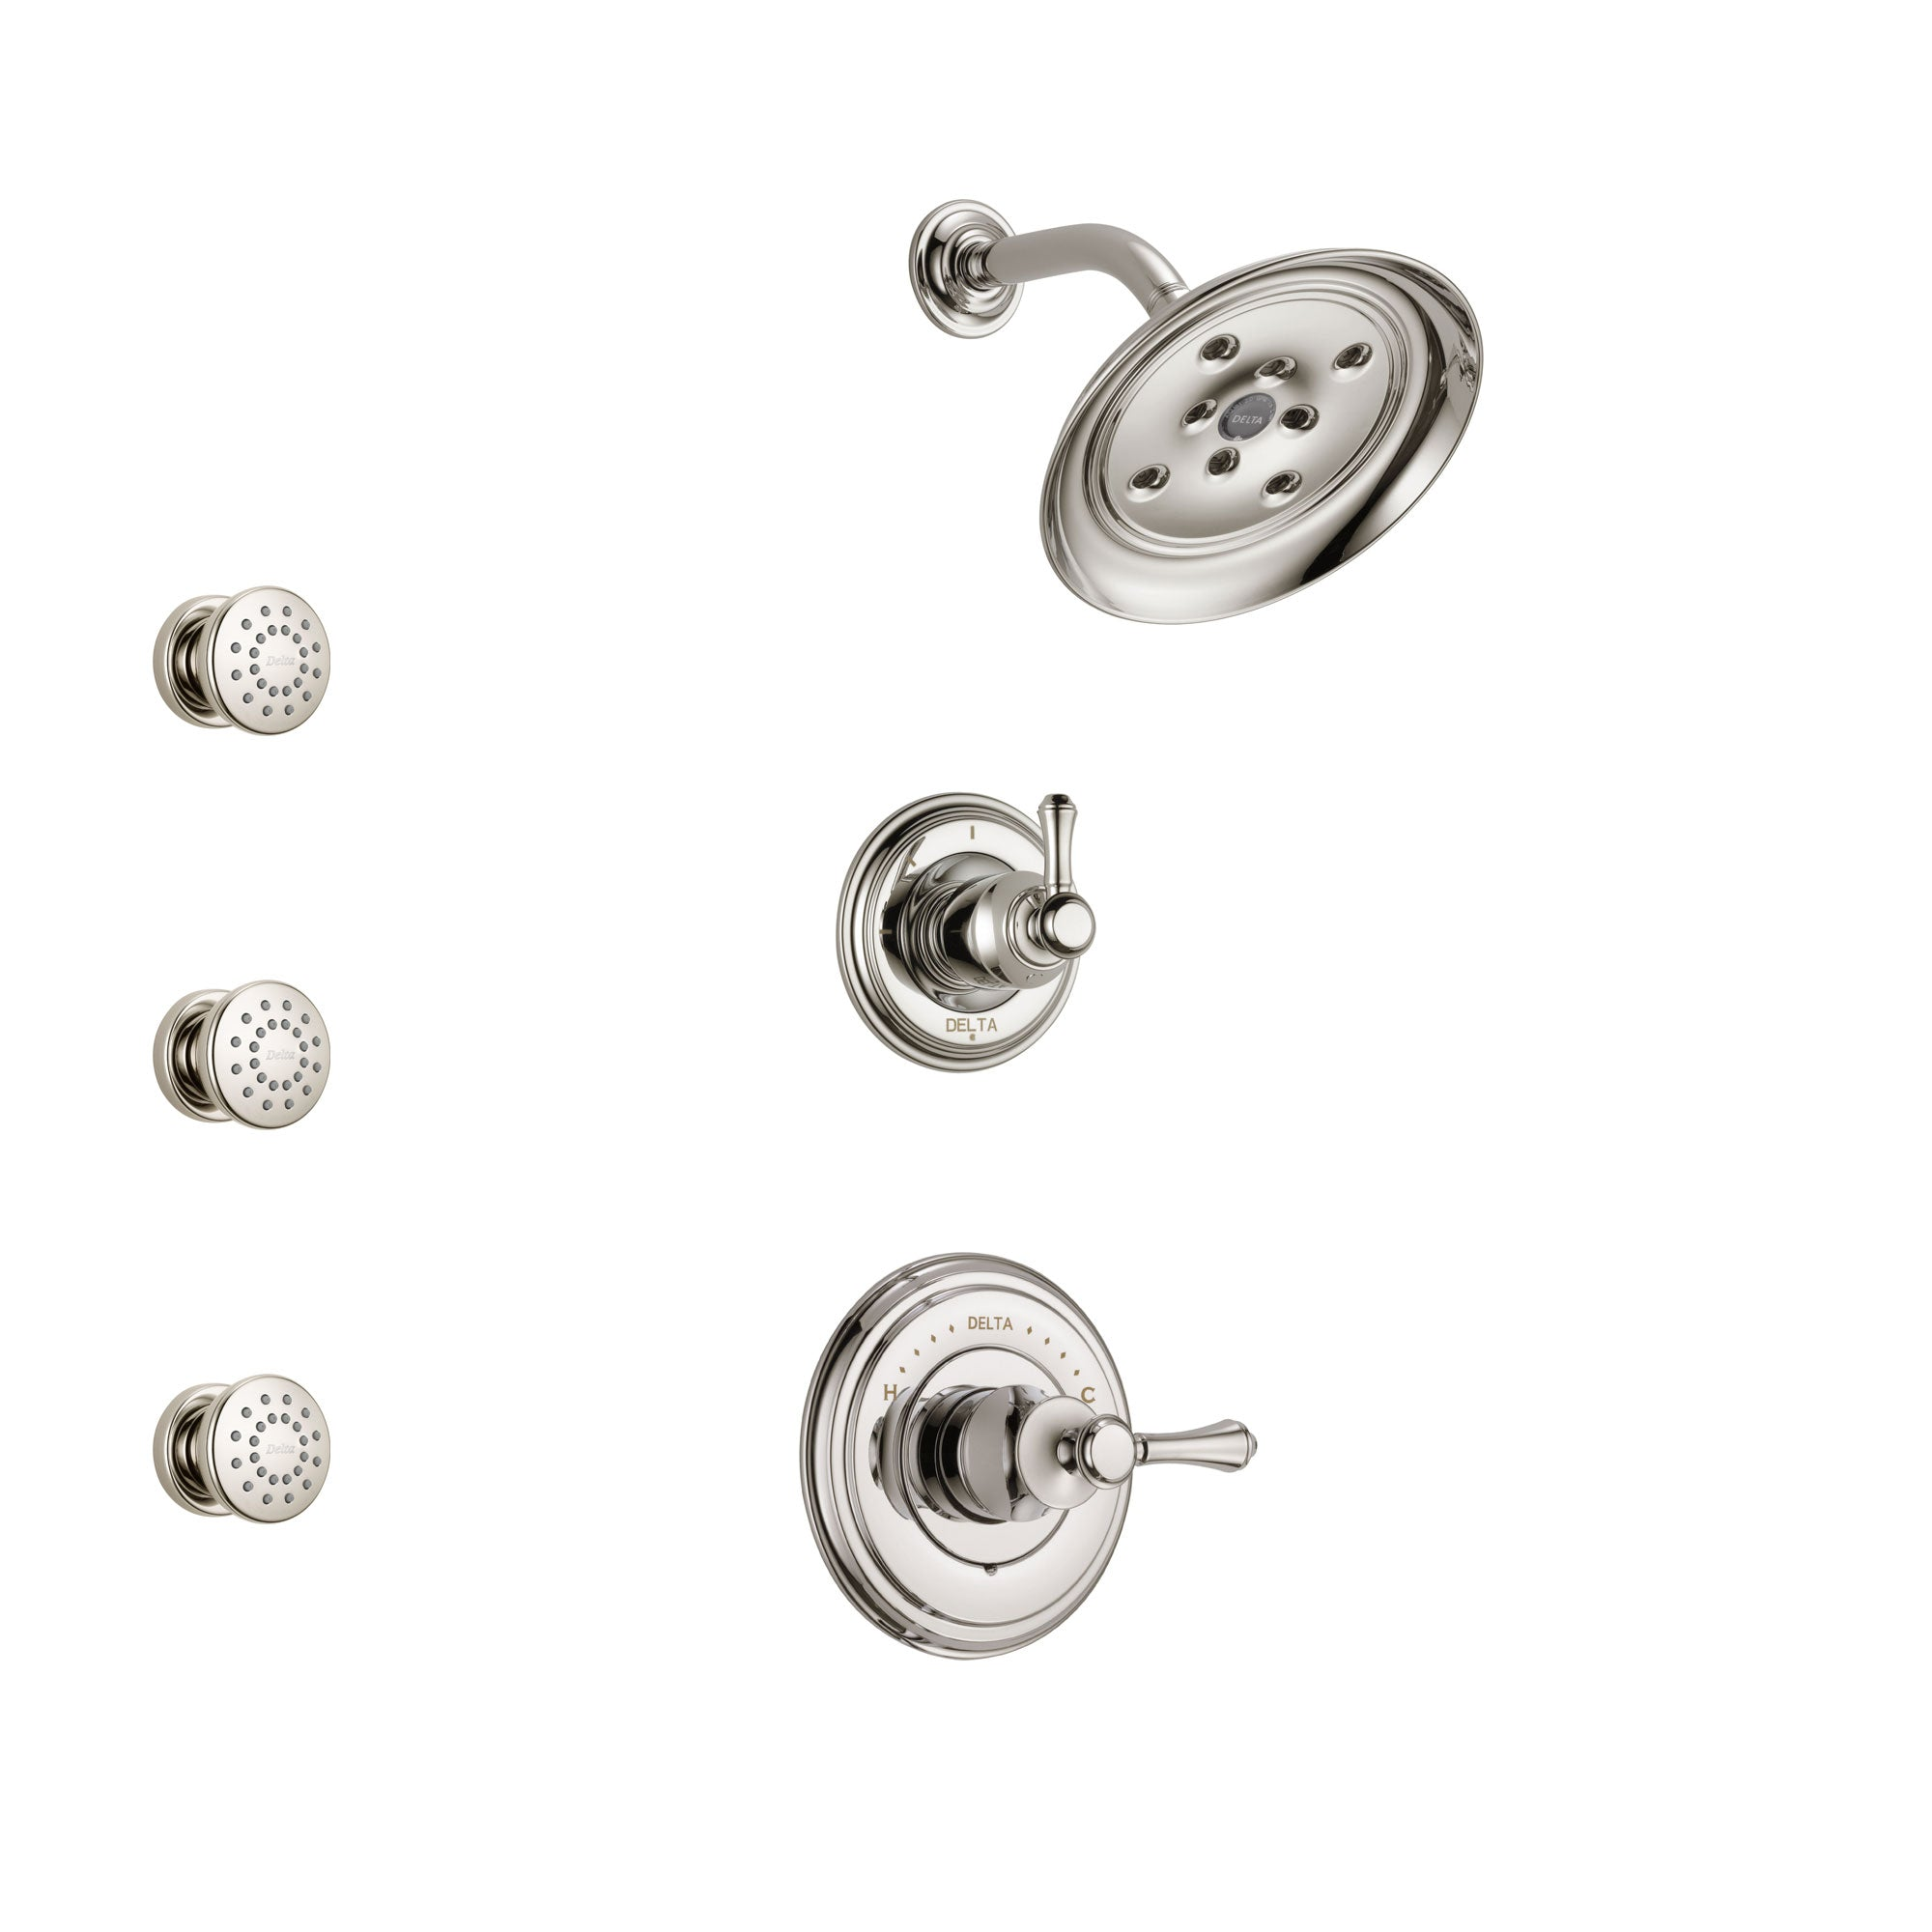 Delta Cassidy Polished Nickel Finish Shower System with Control Handle, 3-Setting Diverter, Showerhead, and 3 Body Sprays SS142972PN1